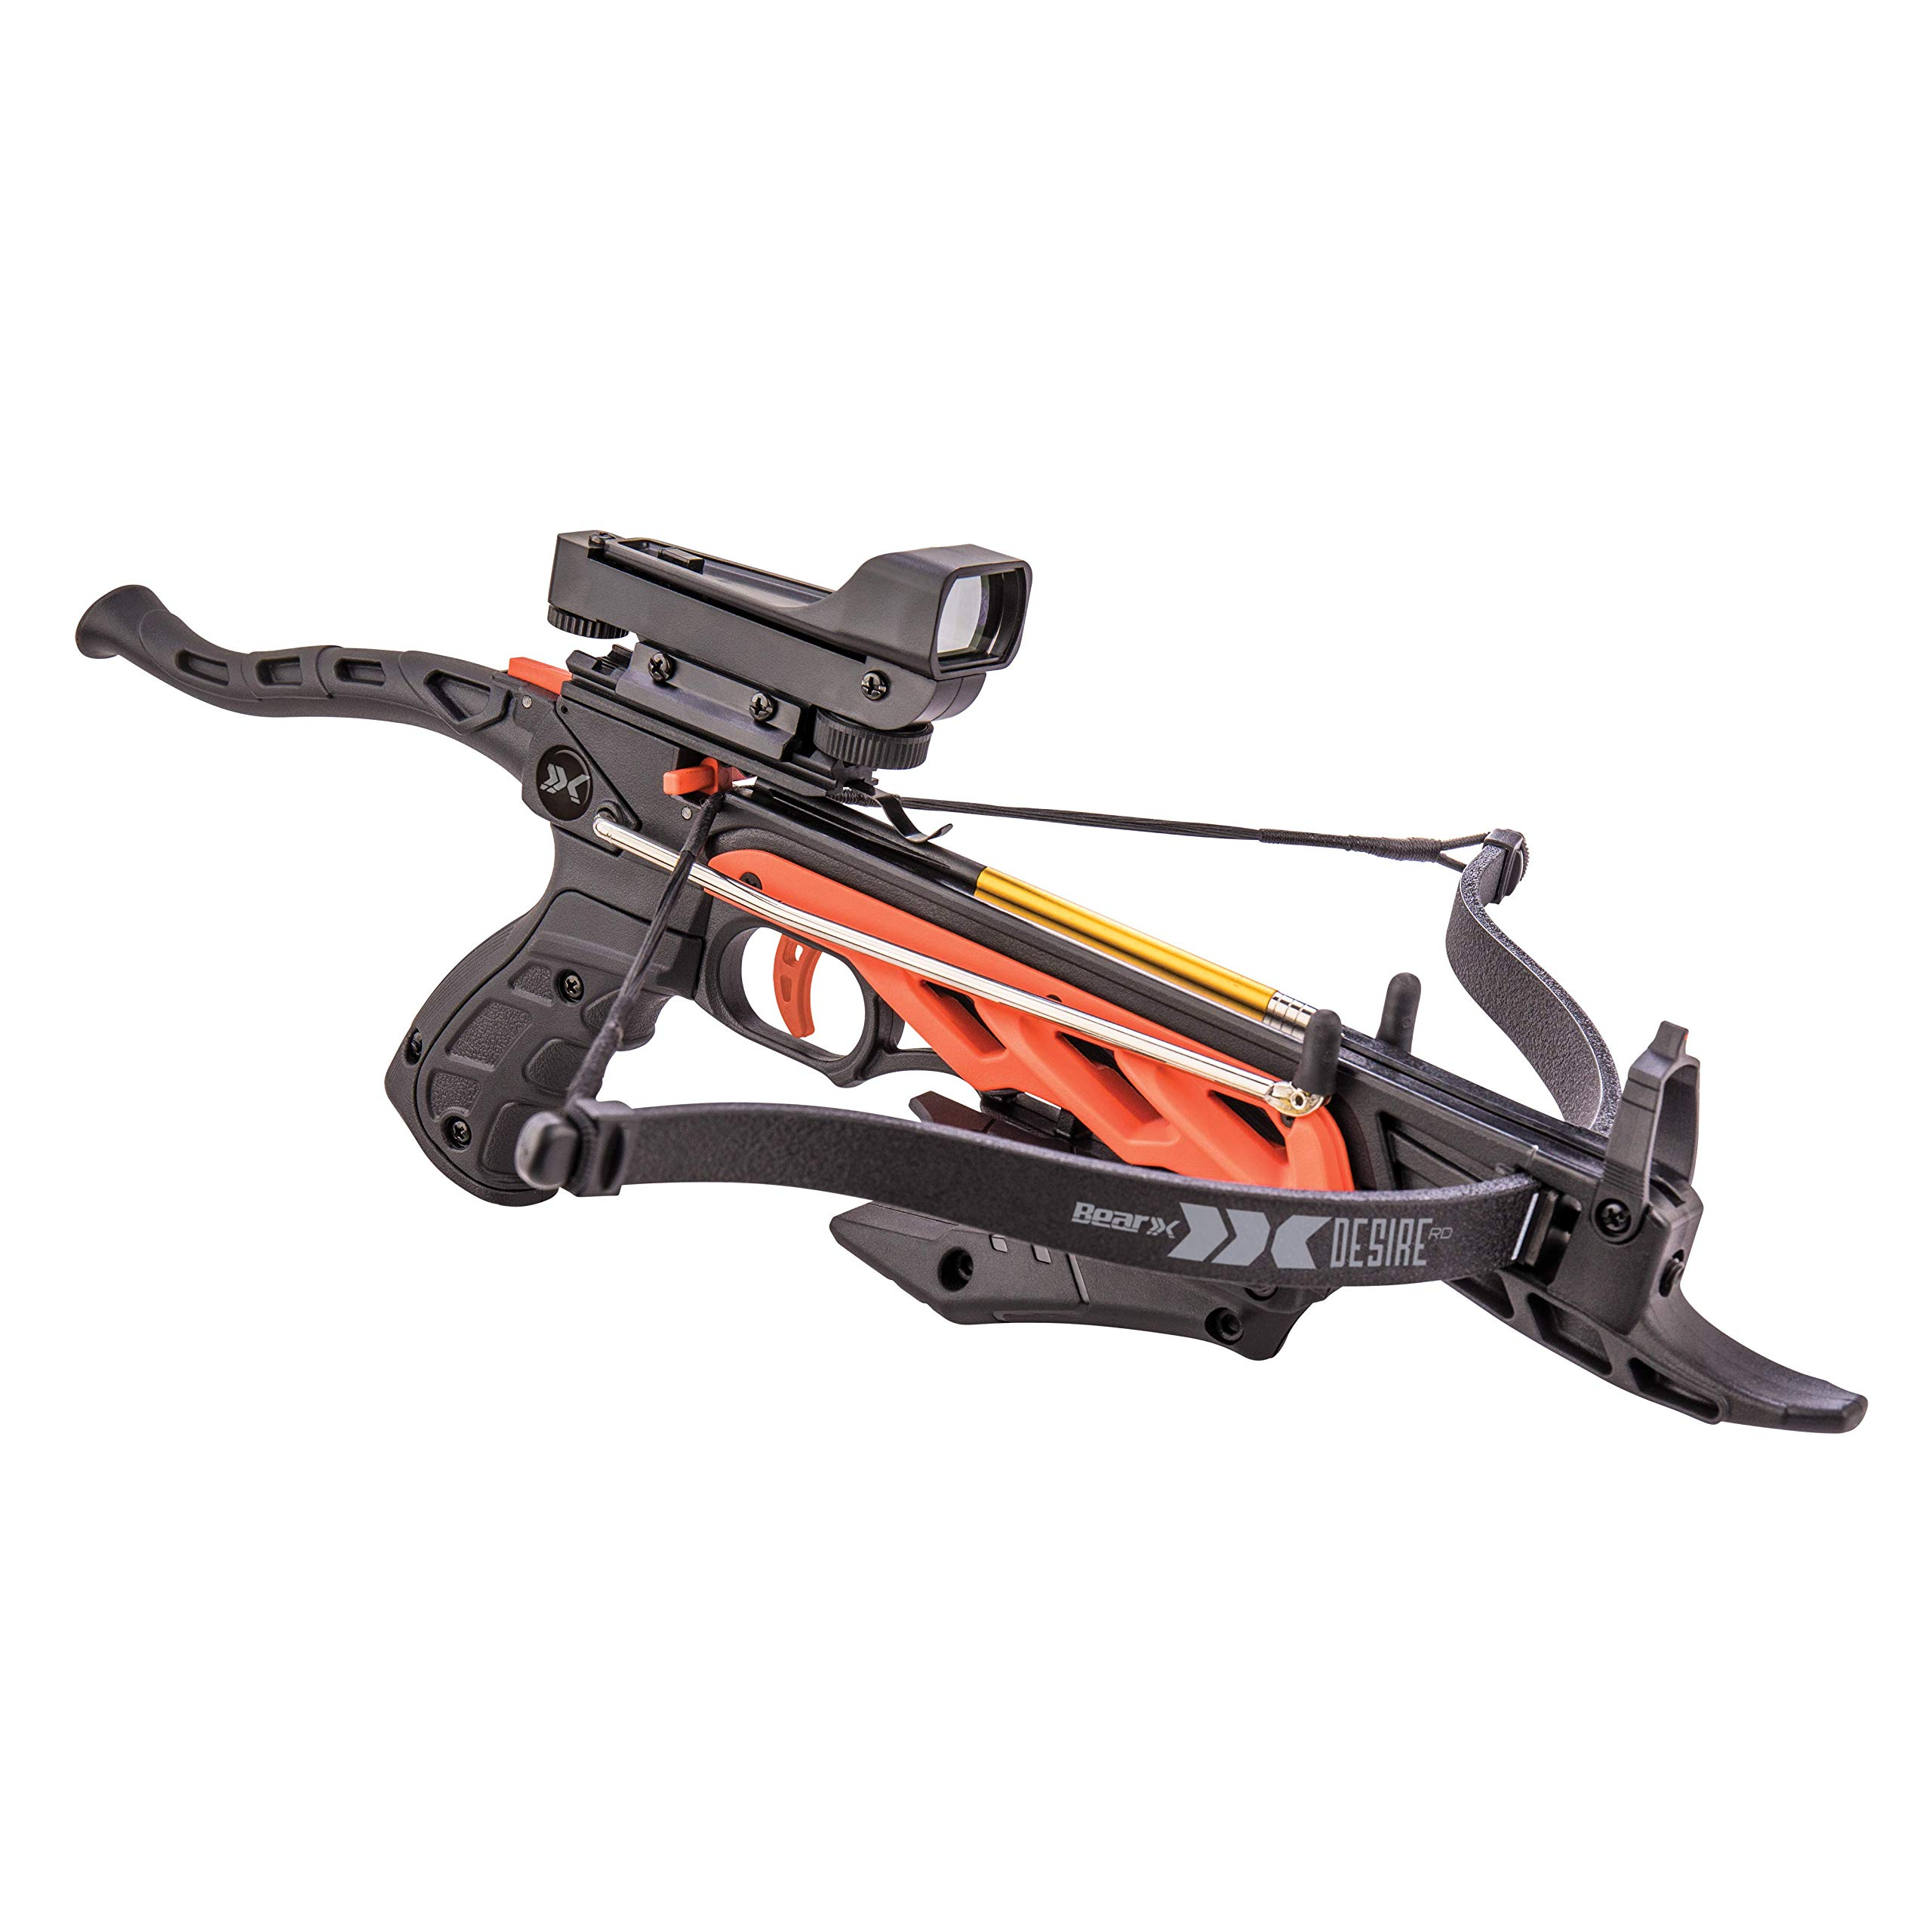 Bear X Desire RD Self-Cocking Pistol Crossbow with Red Dot Sight 3 Premium Bolts